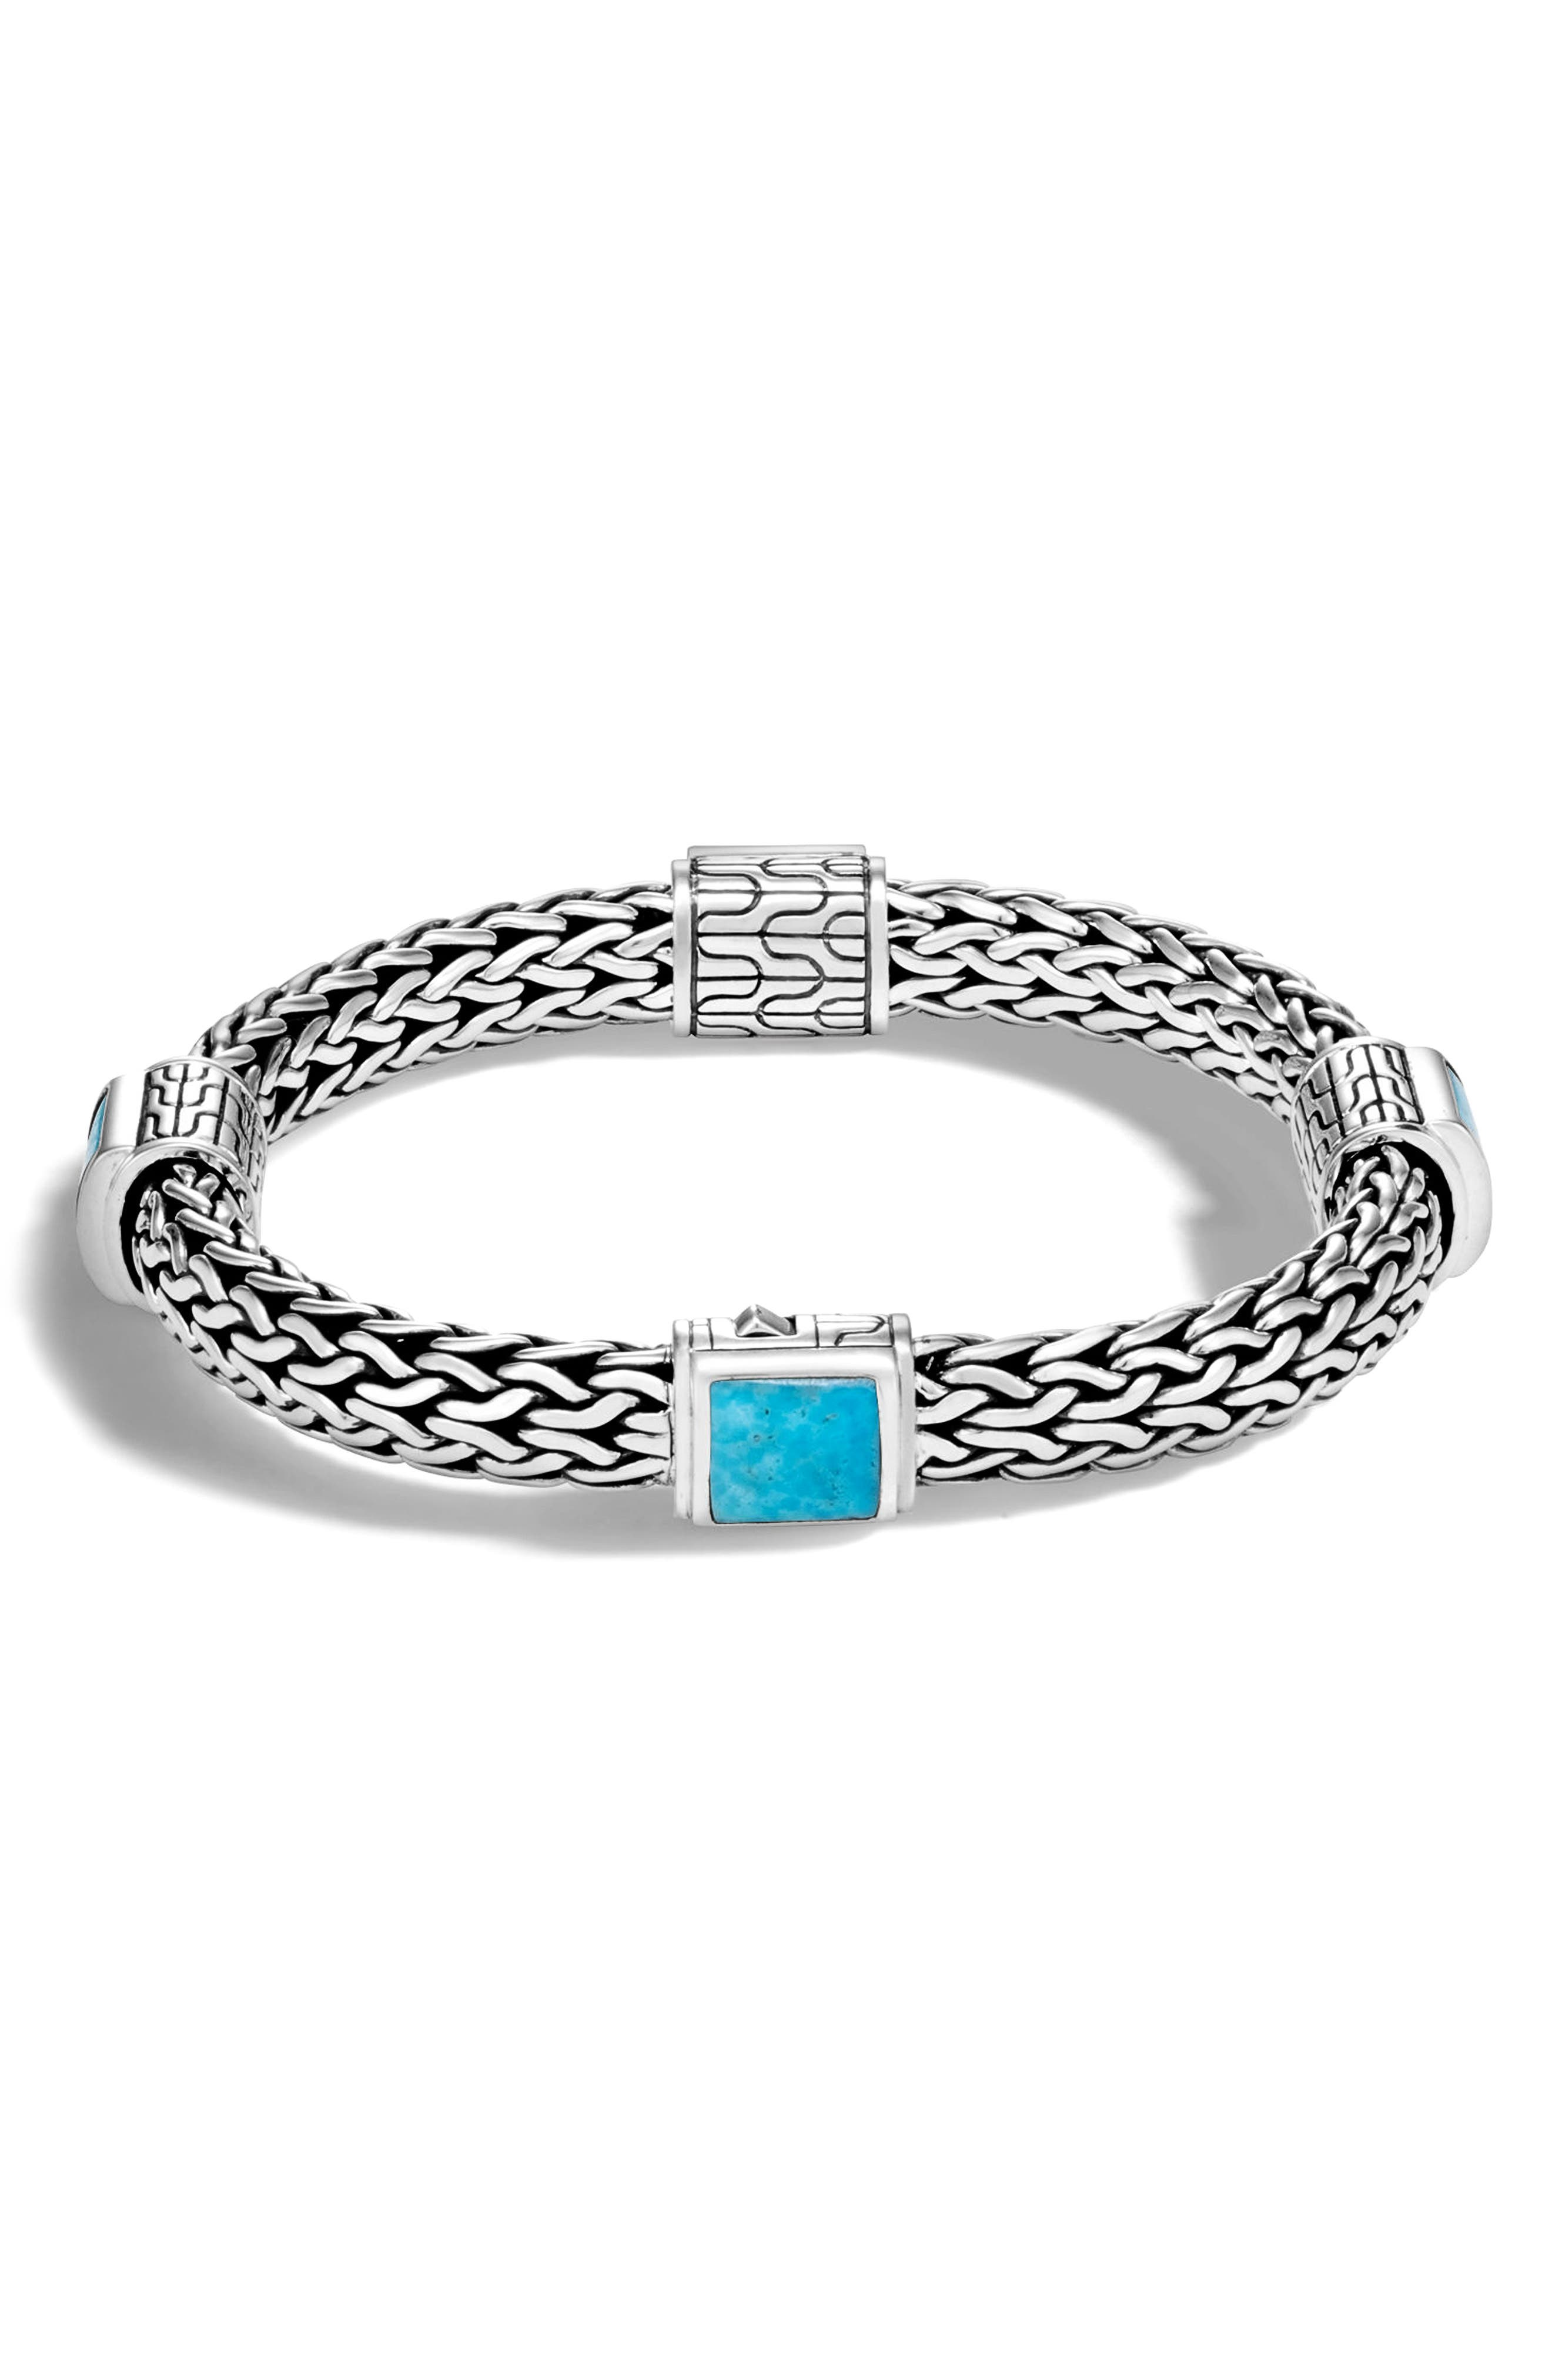 Classic Chain 7.5mm Station Bracelet,                         Main,                         color, SILVER/ TURQUOISE